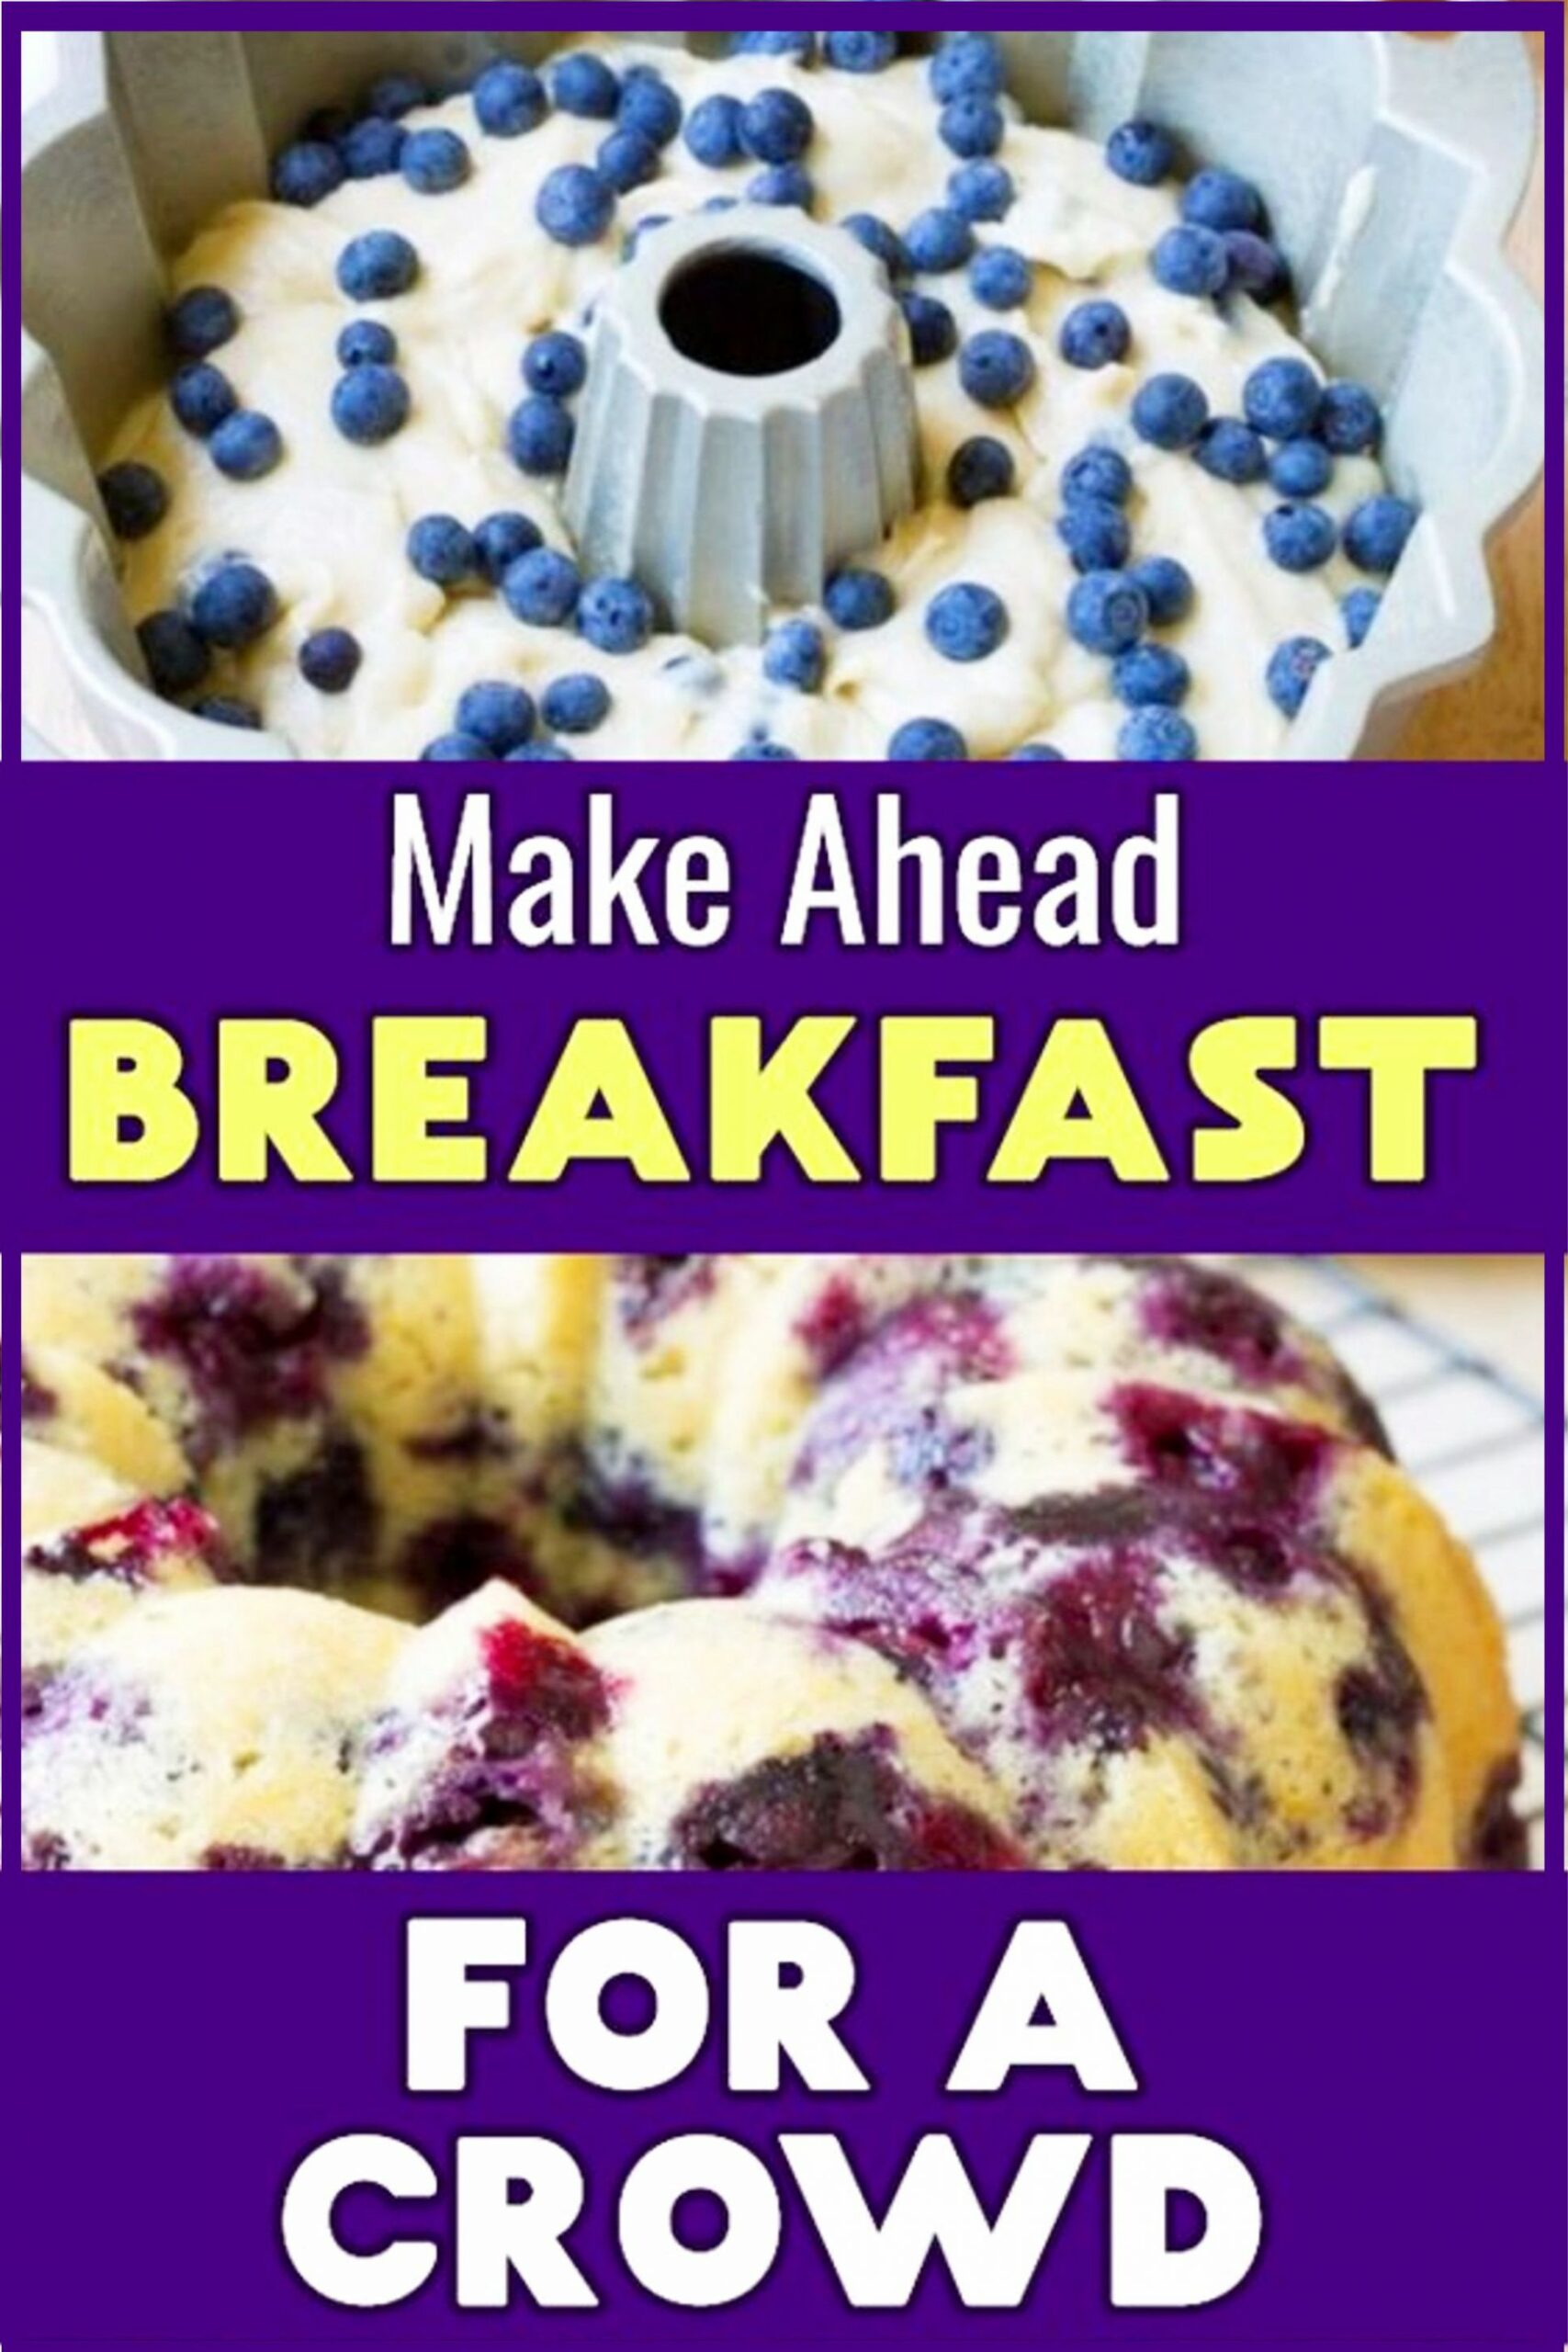 10 Easy Brunch Recipes For a Crowd - Breakfast Bundt Cake Recipes ..